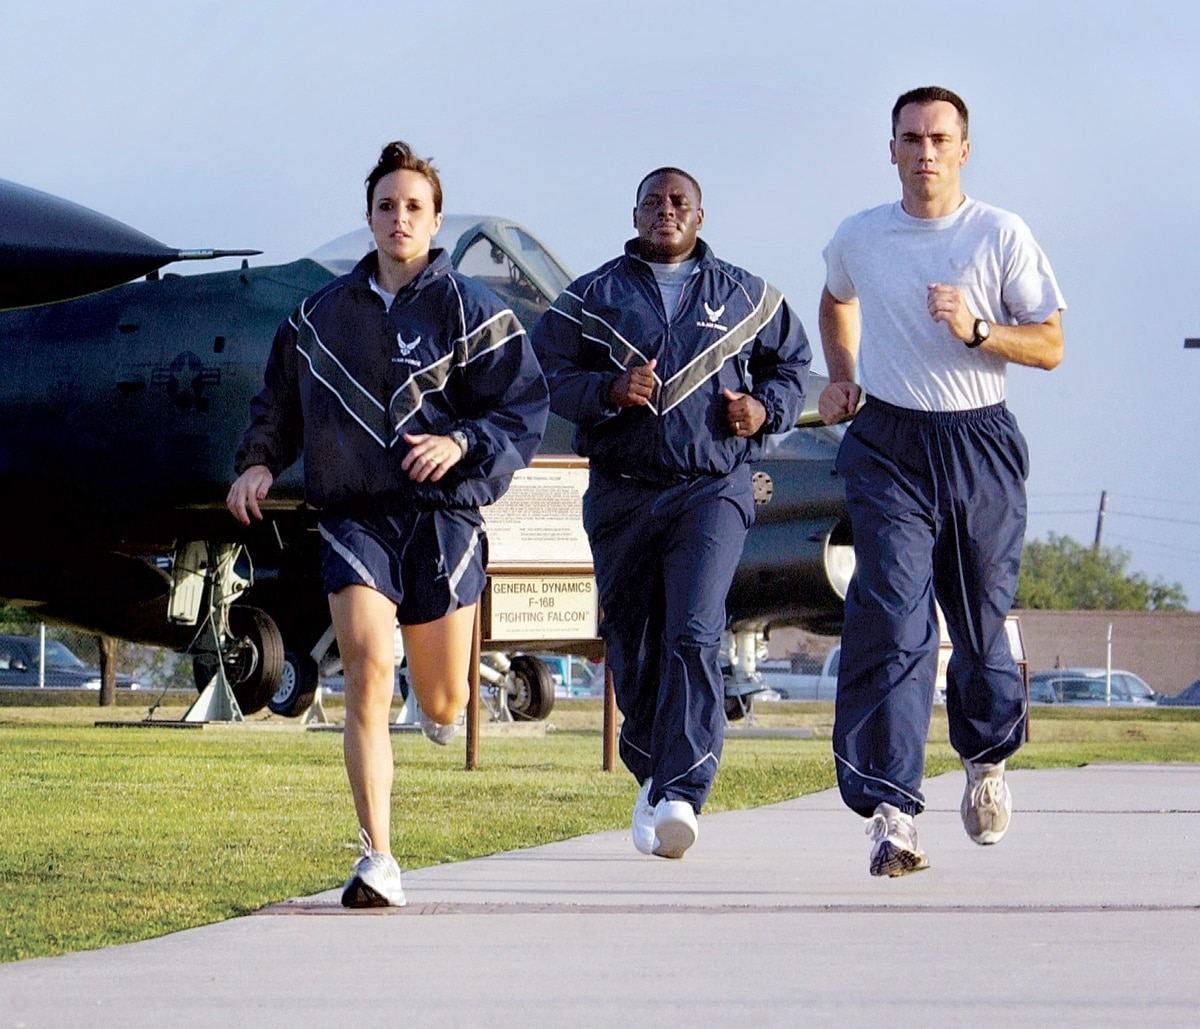 Gender neutral fitness test for all? Air Force considering